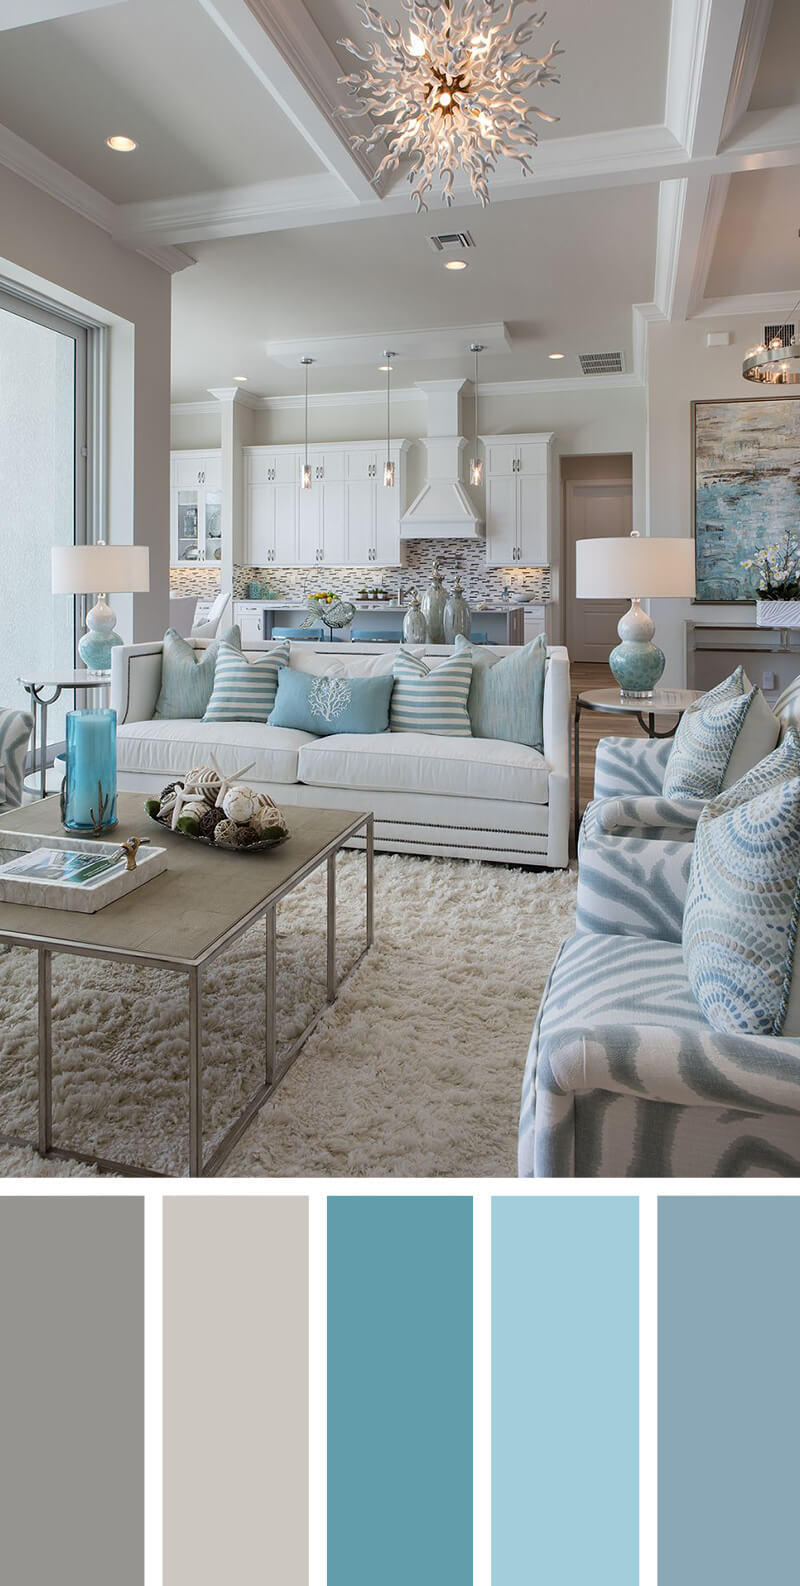 7 Living Room Color Schemes That Will Make Your Space Look Professionally Designed Decor10 Blog